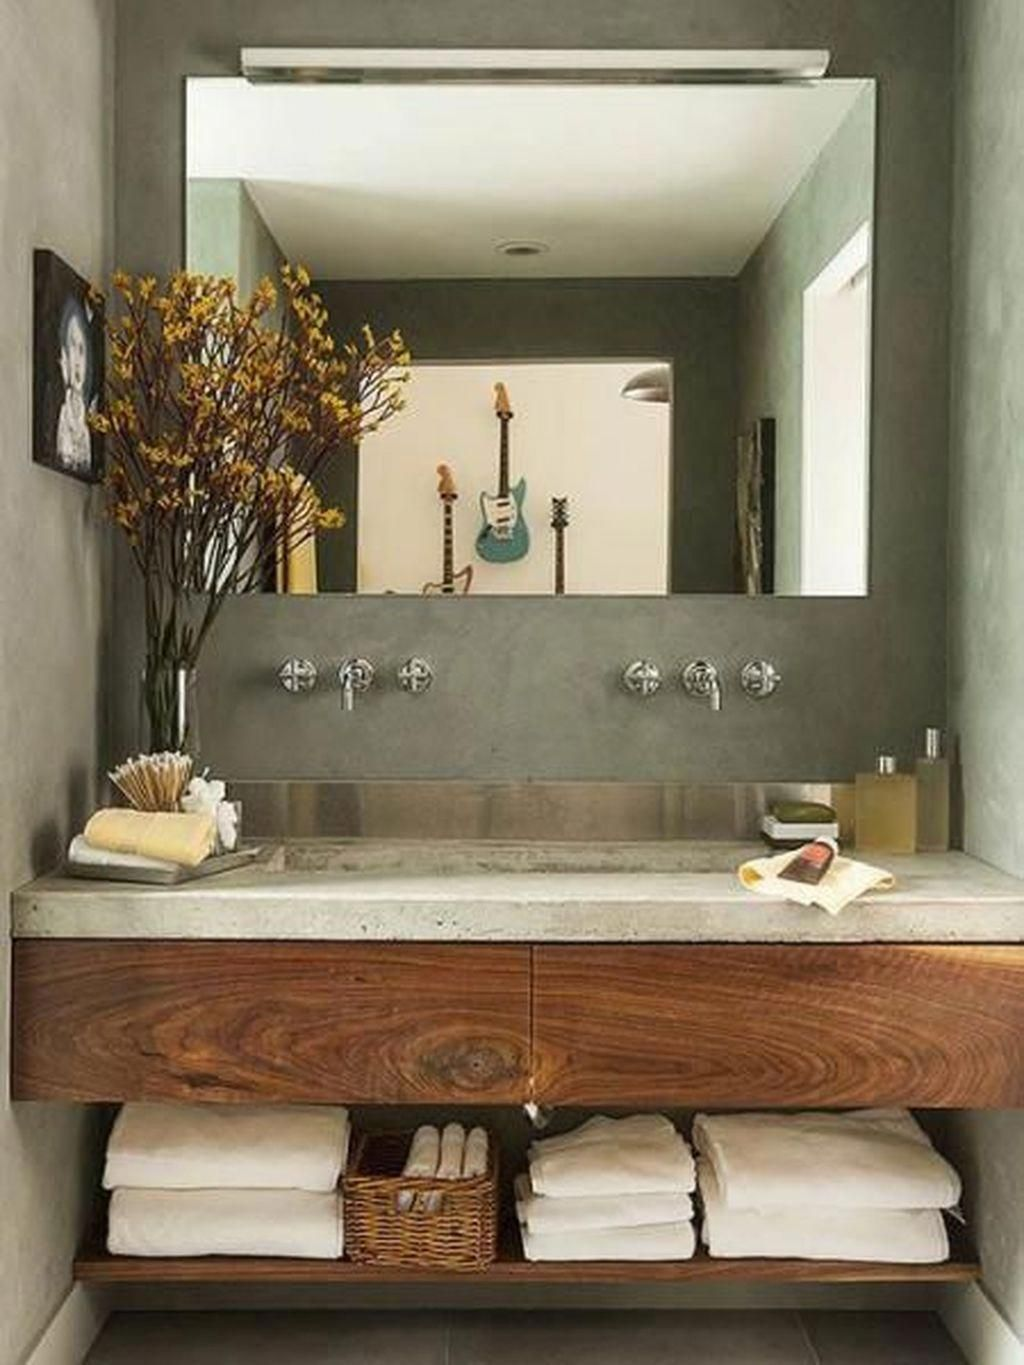 Examine This Necessary Image And Have A Look At The Here And Now Details On Bathroom Shelf Decor